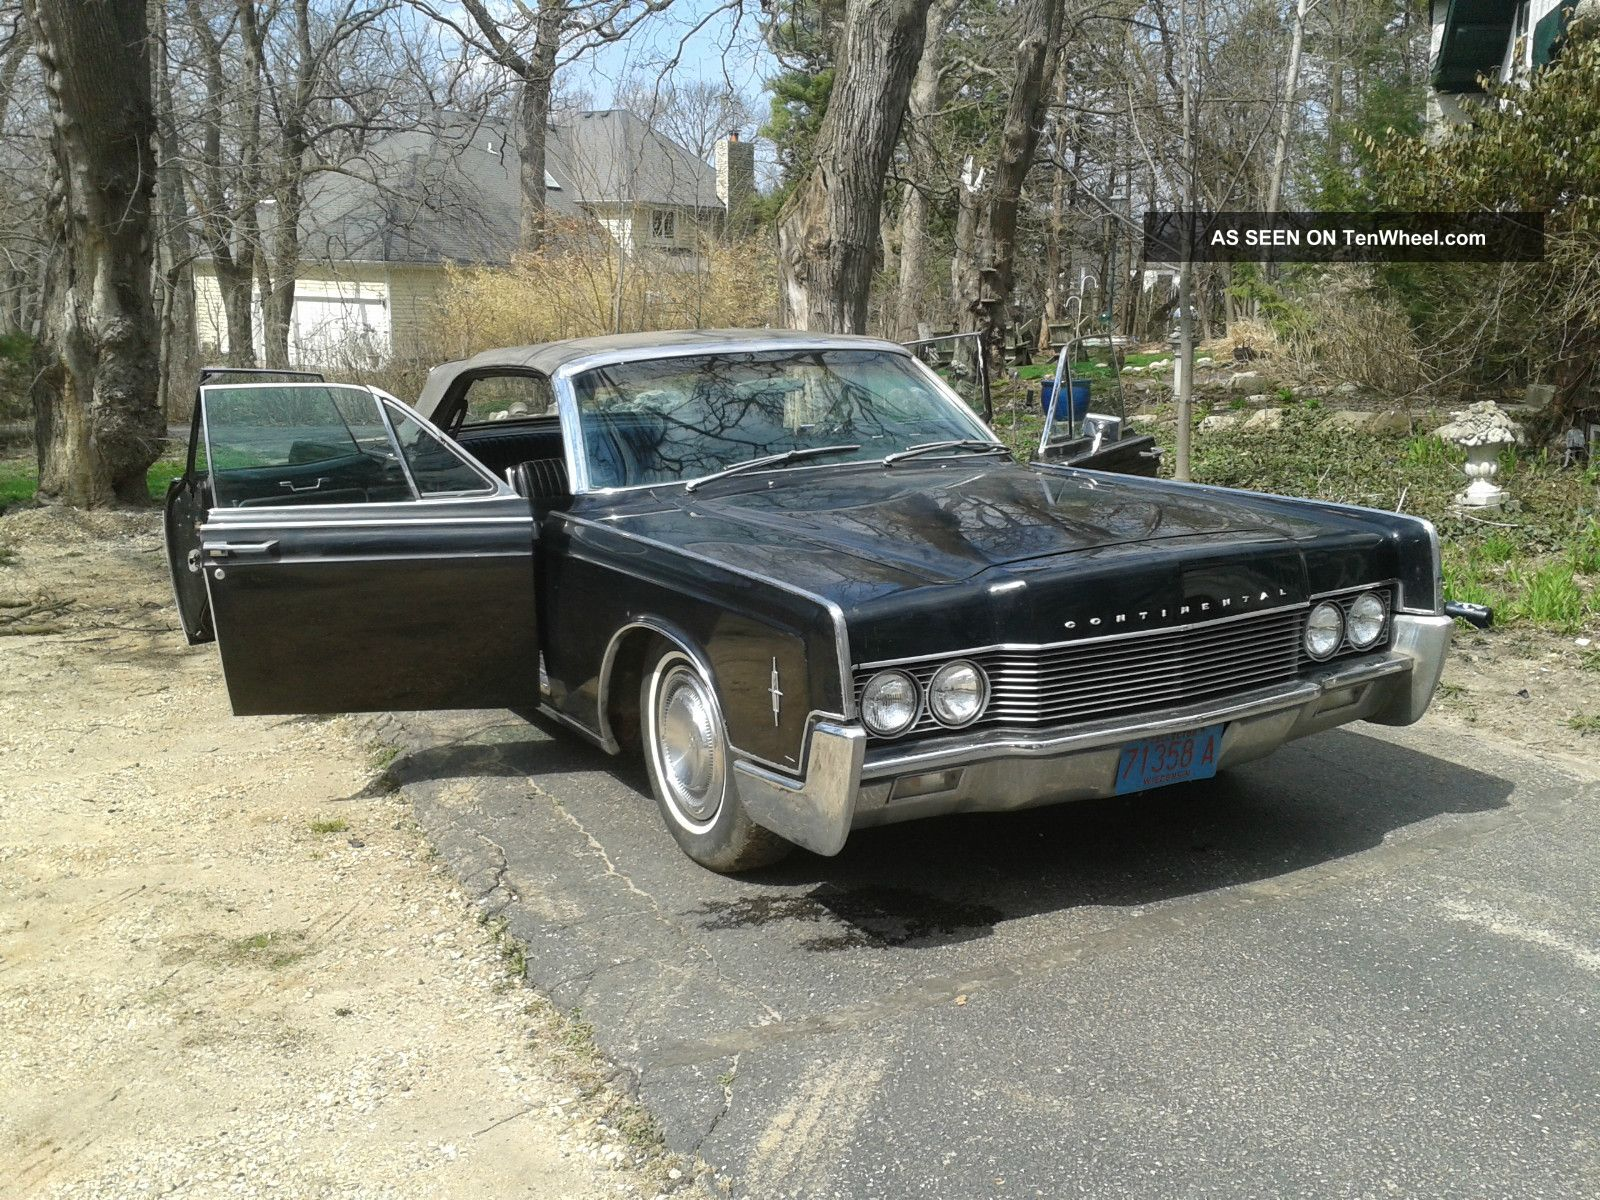 1966 Lincoln Continental Convertible With Suicide Doors Continental photo